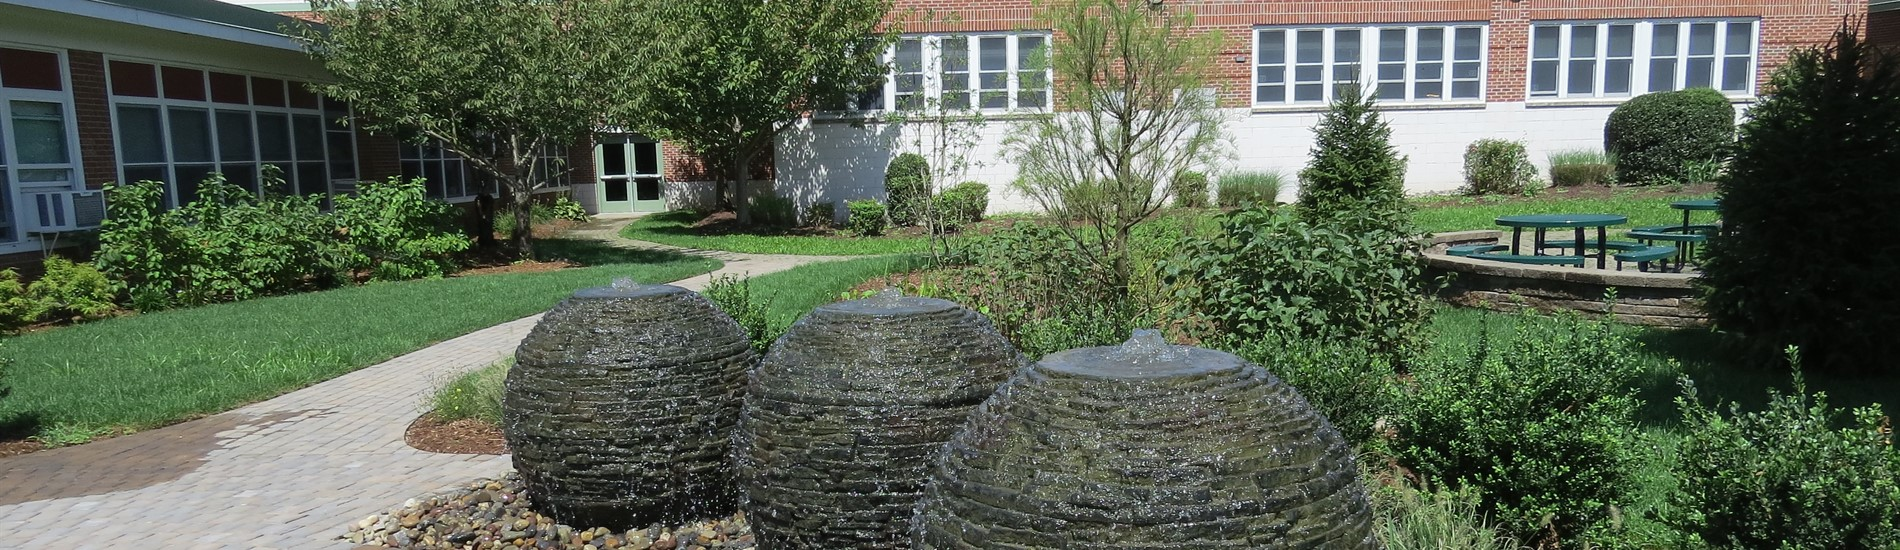 water feature in WCMS courtyard